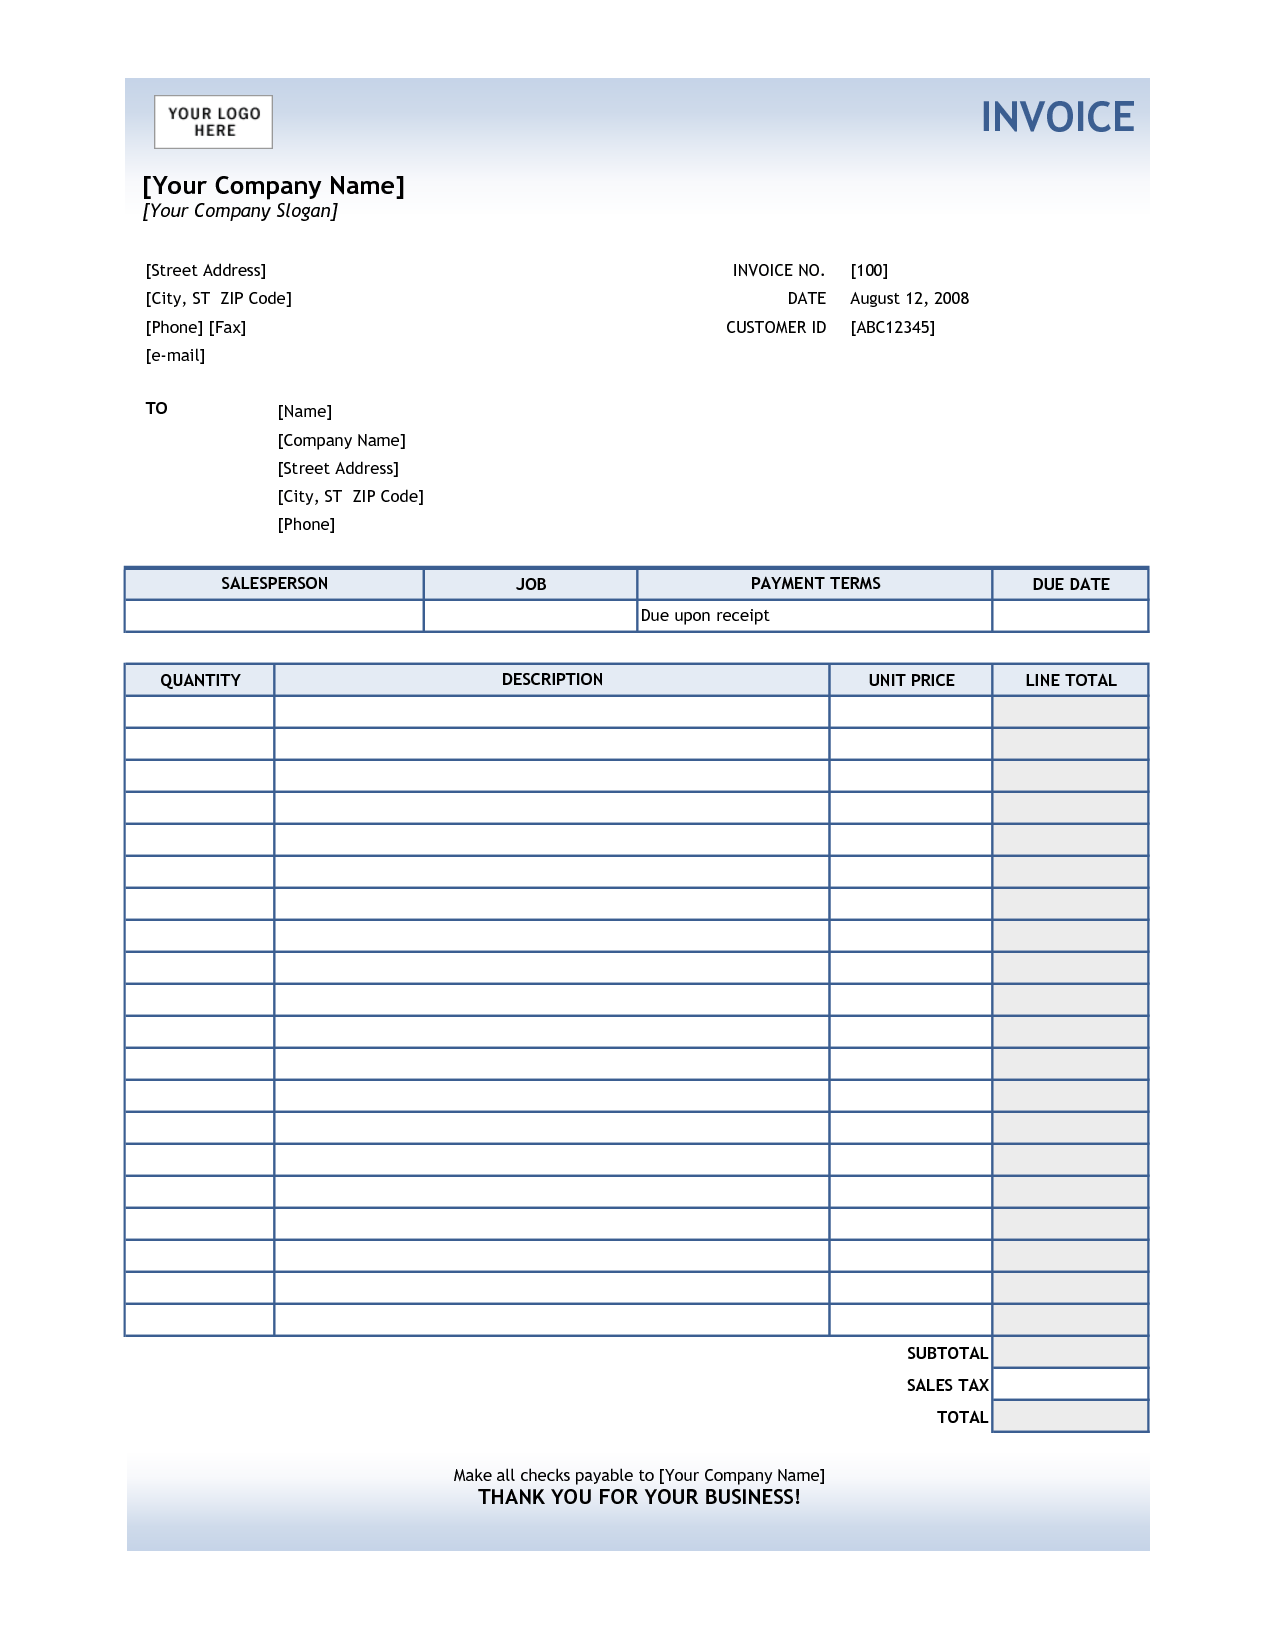 Trucking Invoice Sample and Example Simple Invoice Neverage Firmsinjafo